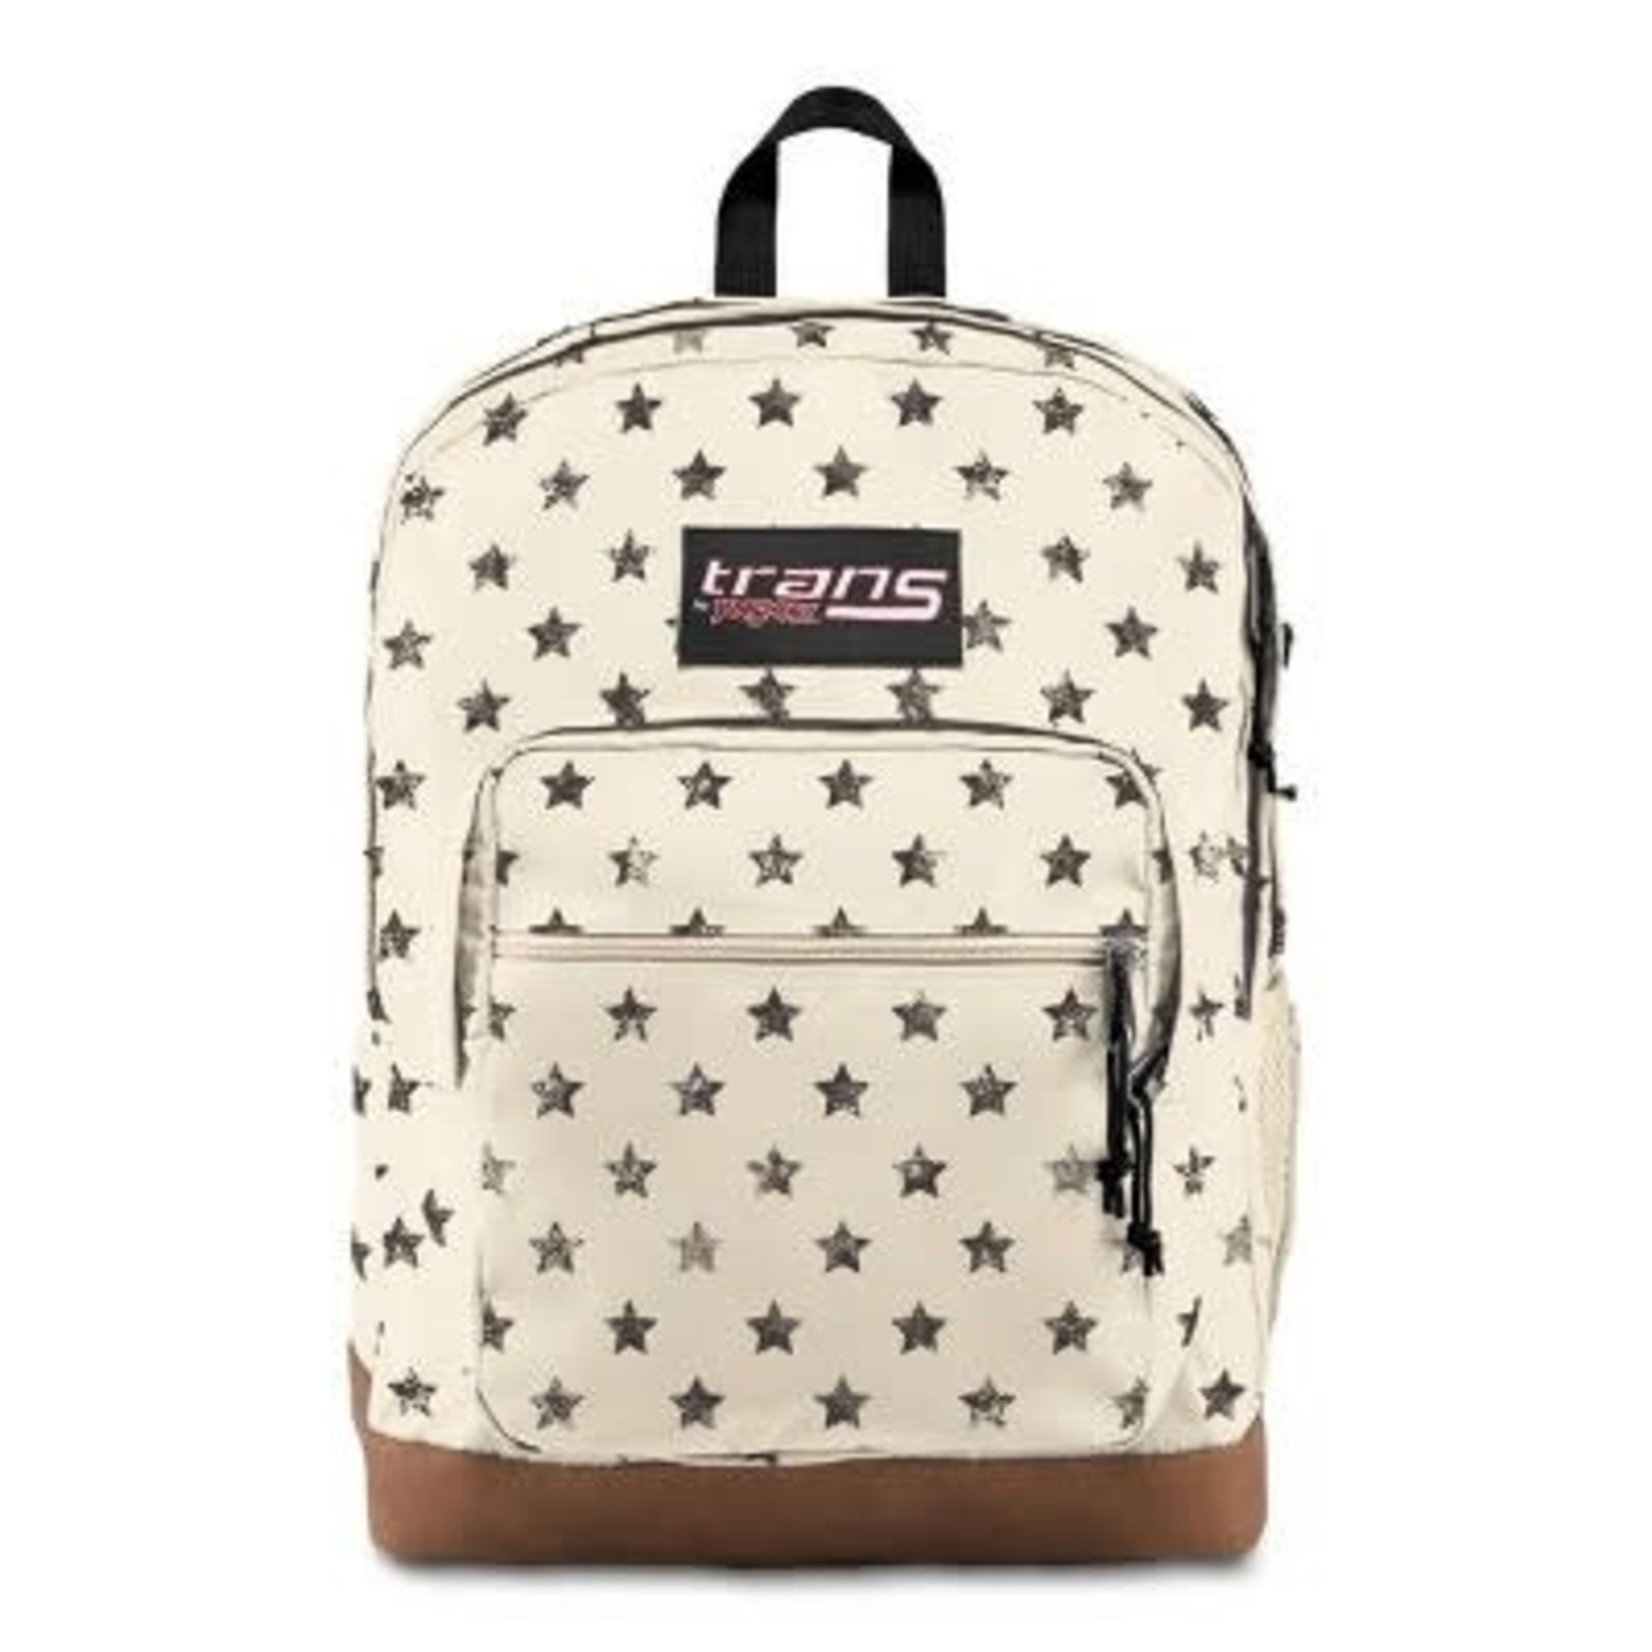 """Trans by JanSport 17"""" Super Cool Backpack - Distressed Stars"""